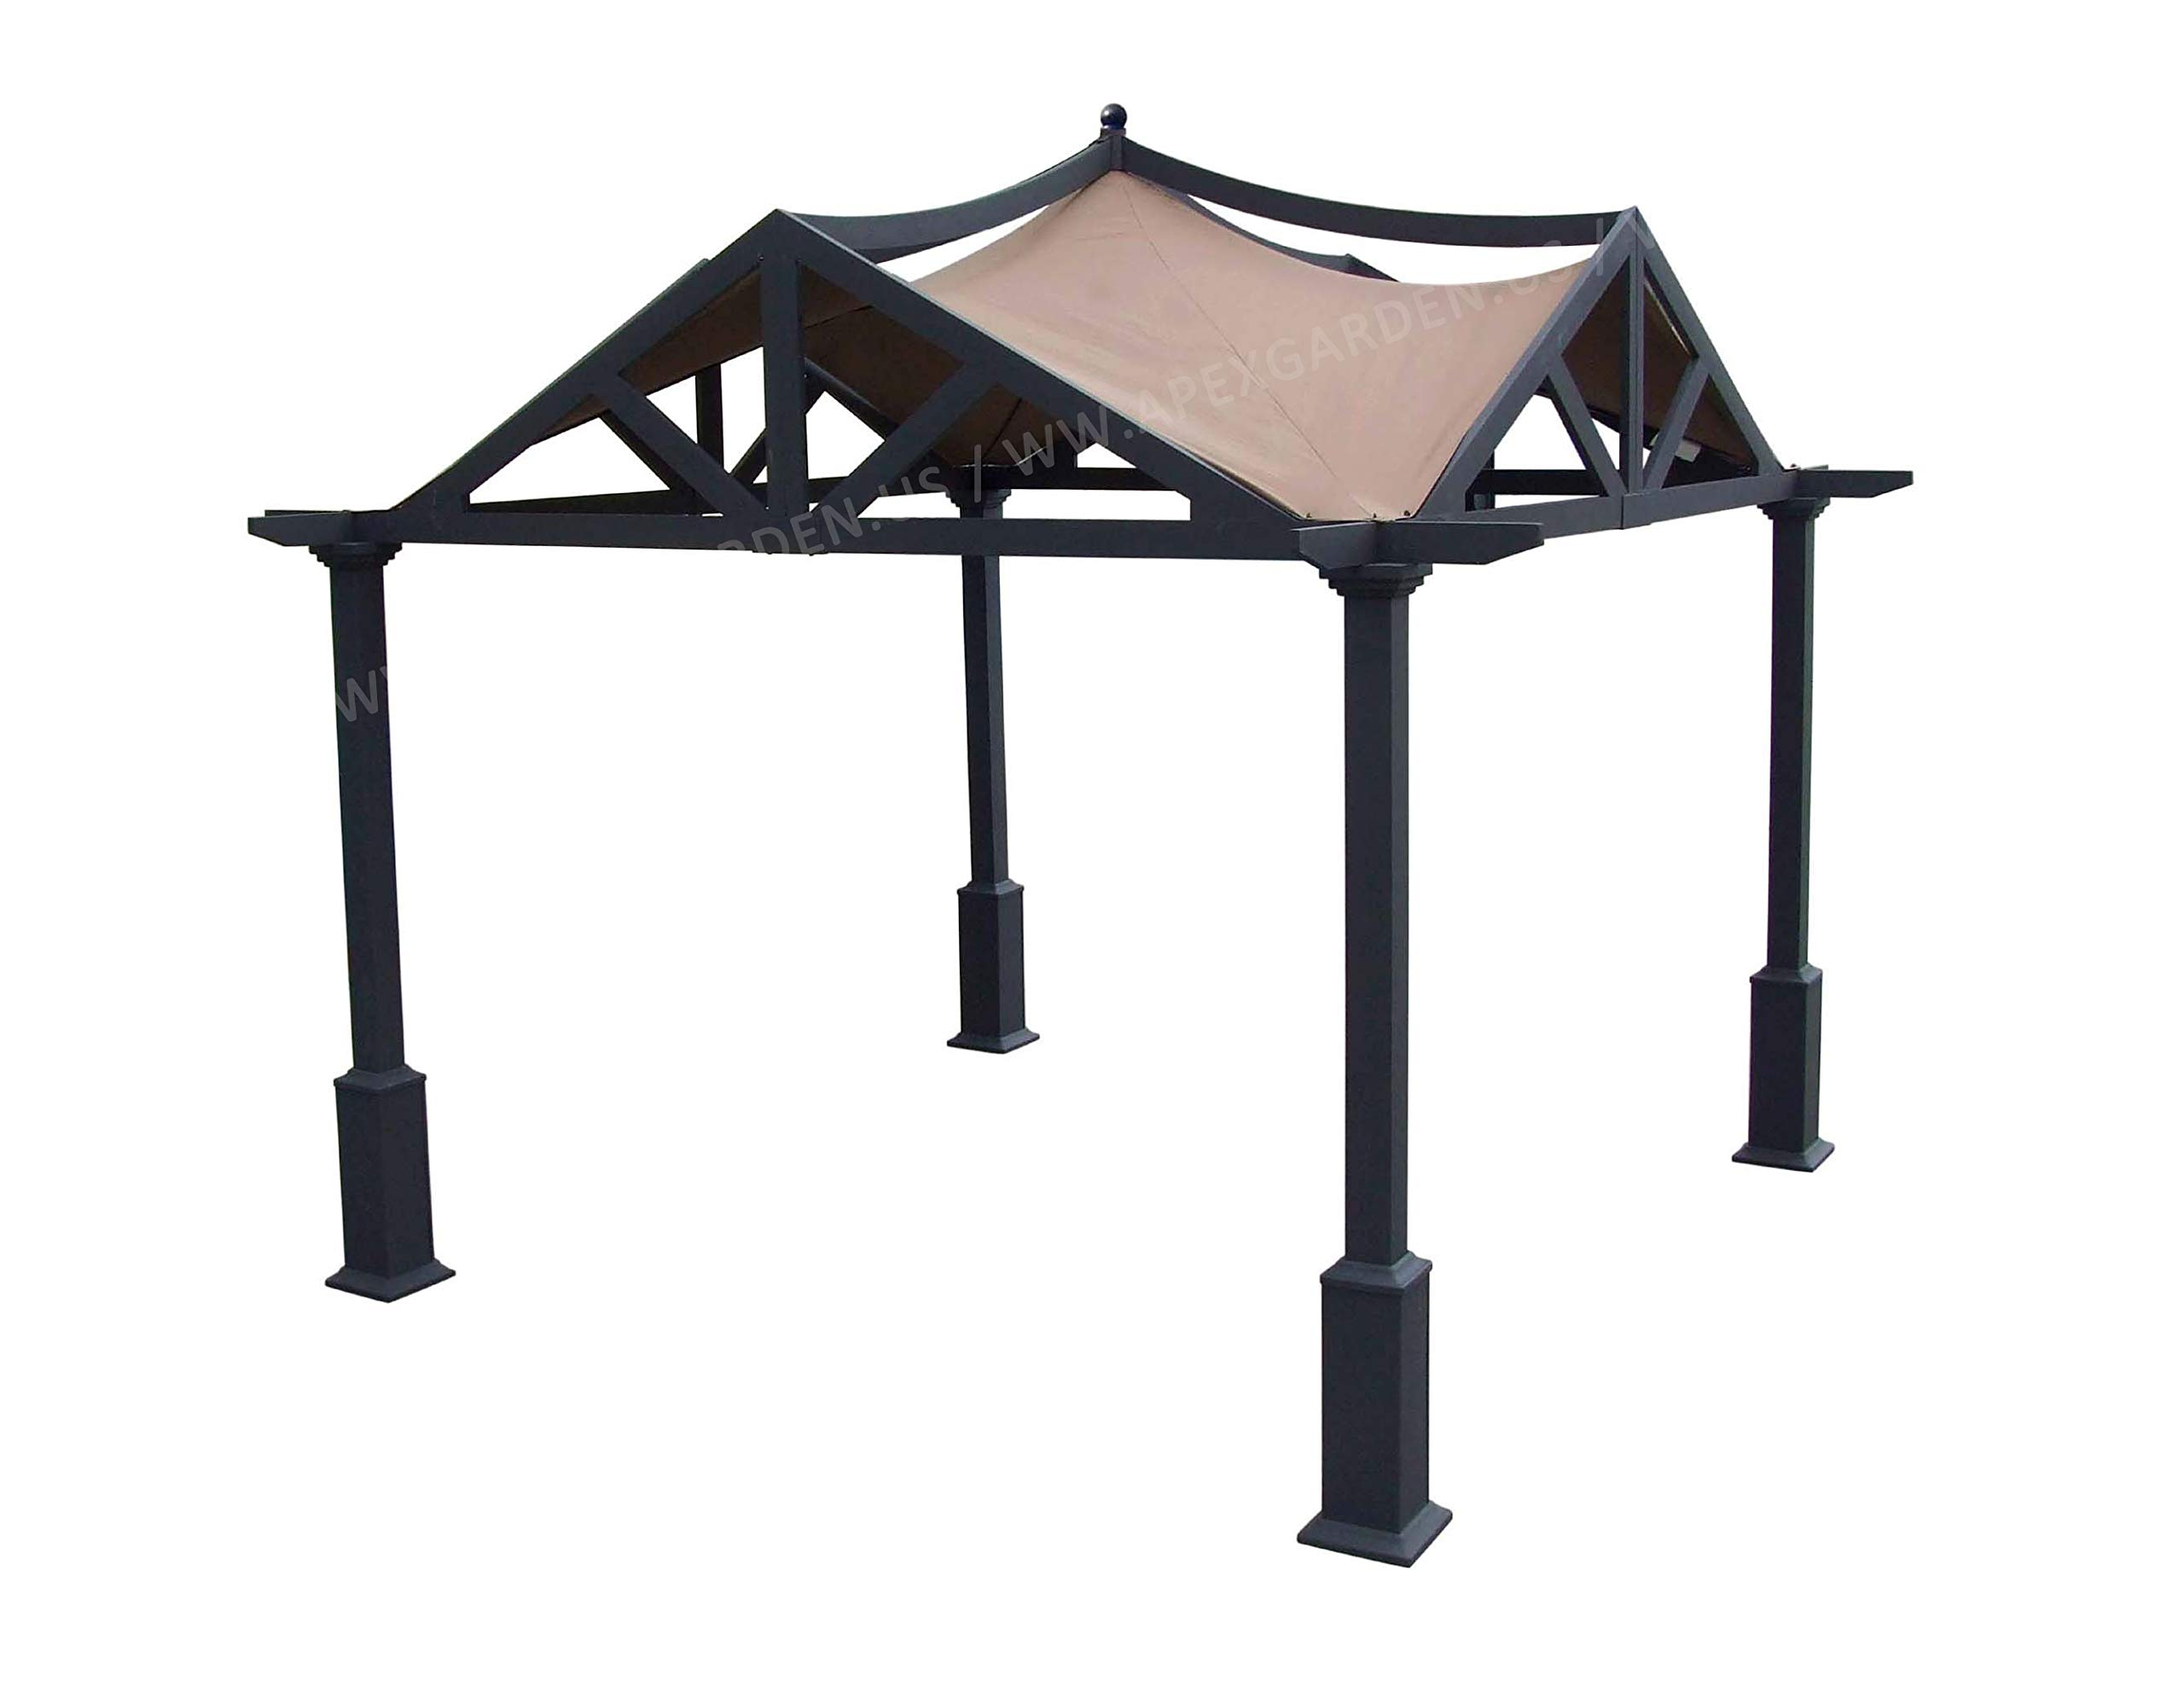 APEX GARDEN Replacement Canopy Top for Lowe's 10 ft x 10 ft Gazebo #GF-12S039B / GF-9A037X by APEX GARDEN (Image #1)